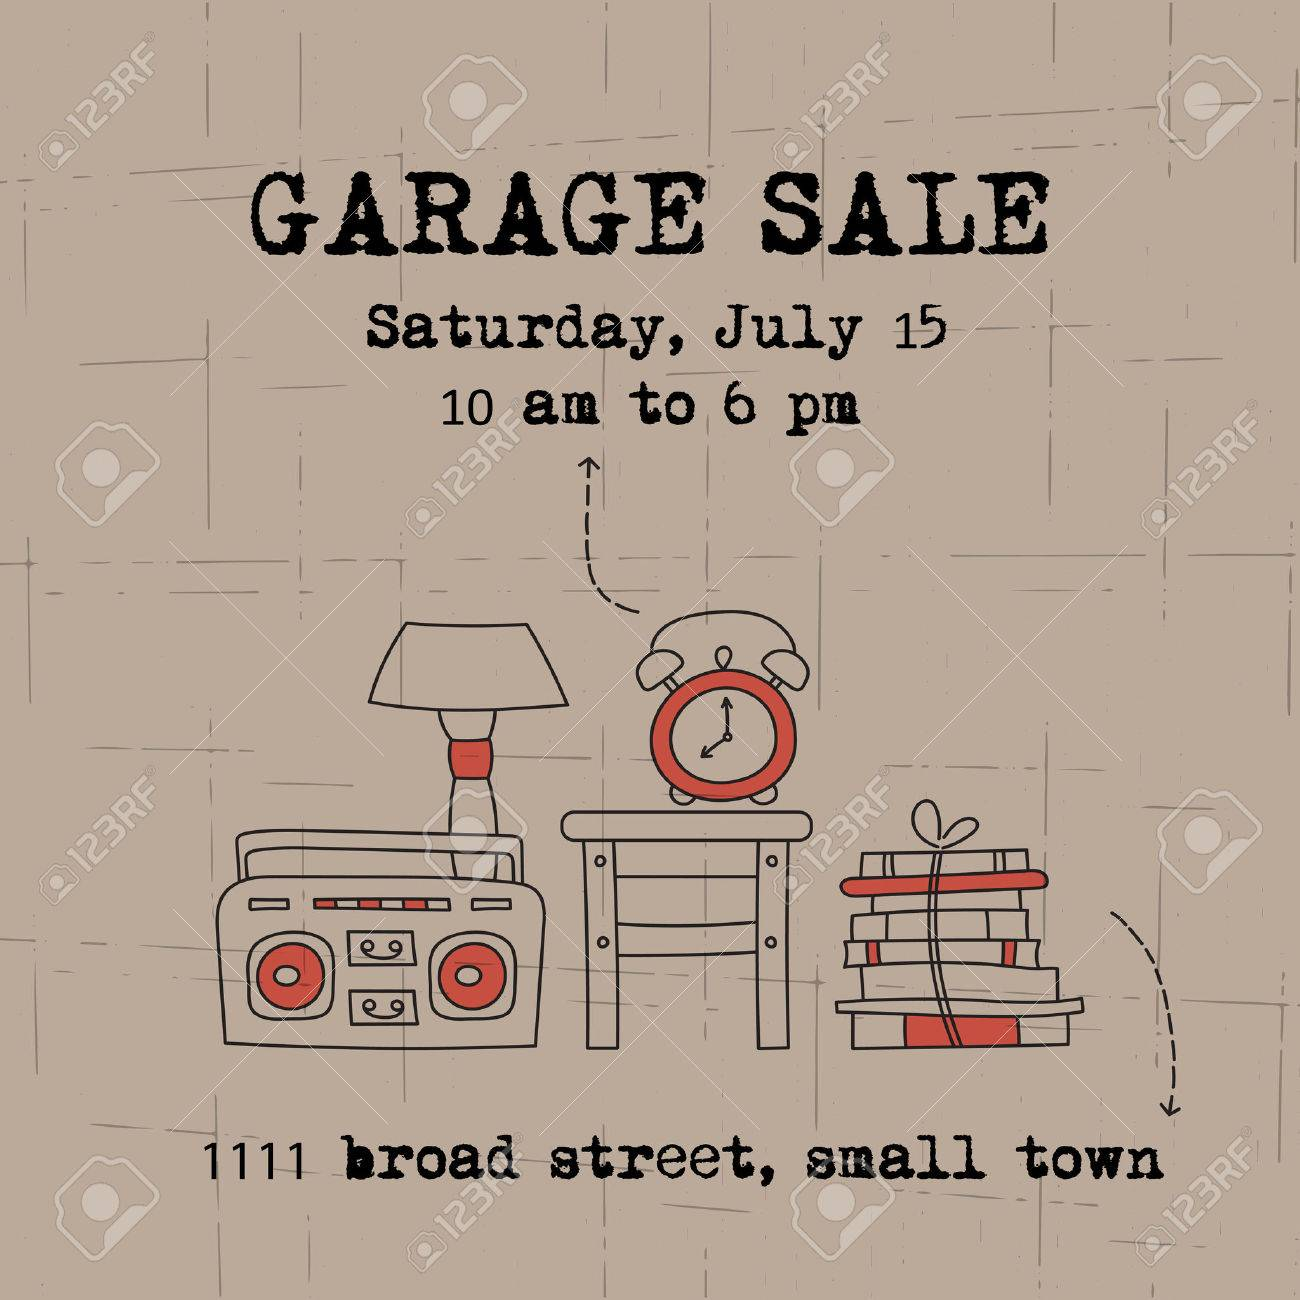 Garage Sale Website Garage Sale Household Used Goods Vector Square Banner Template